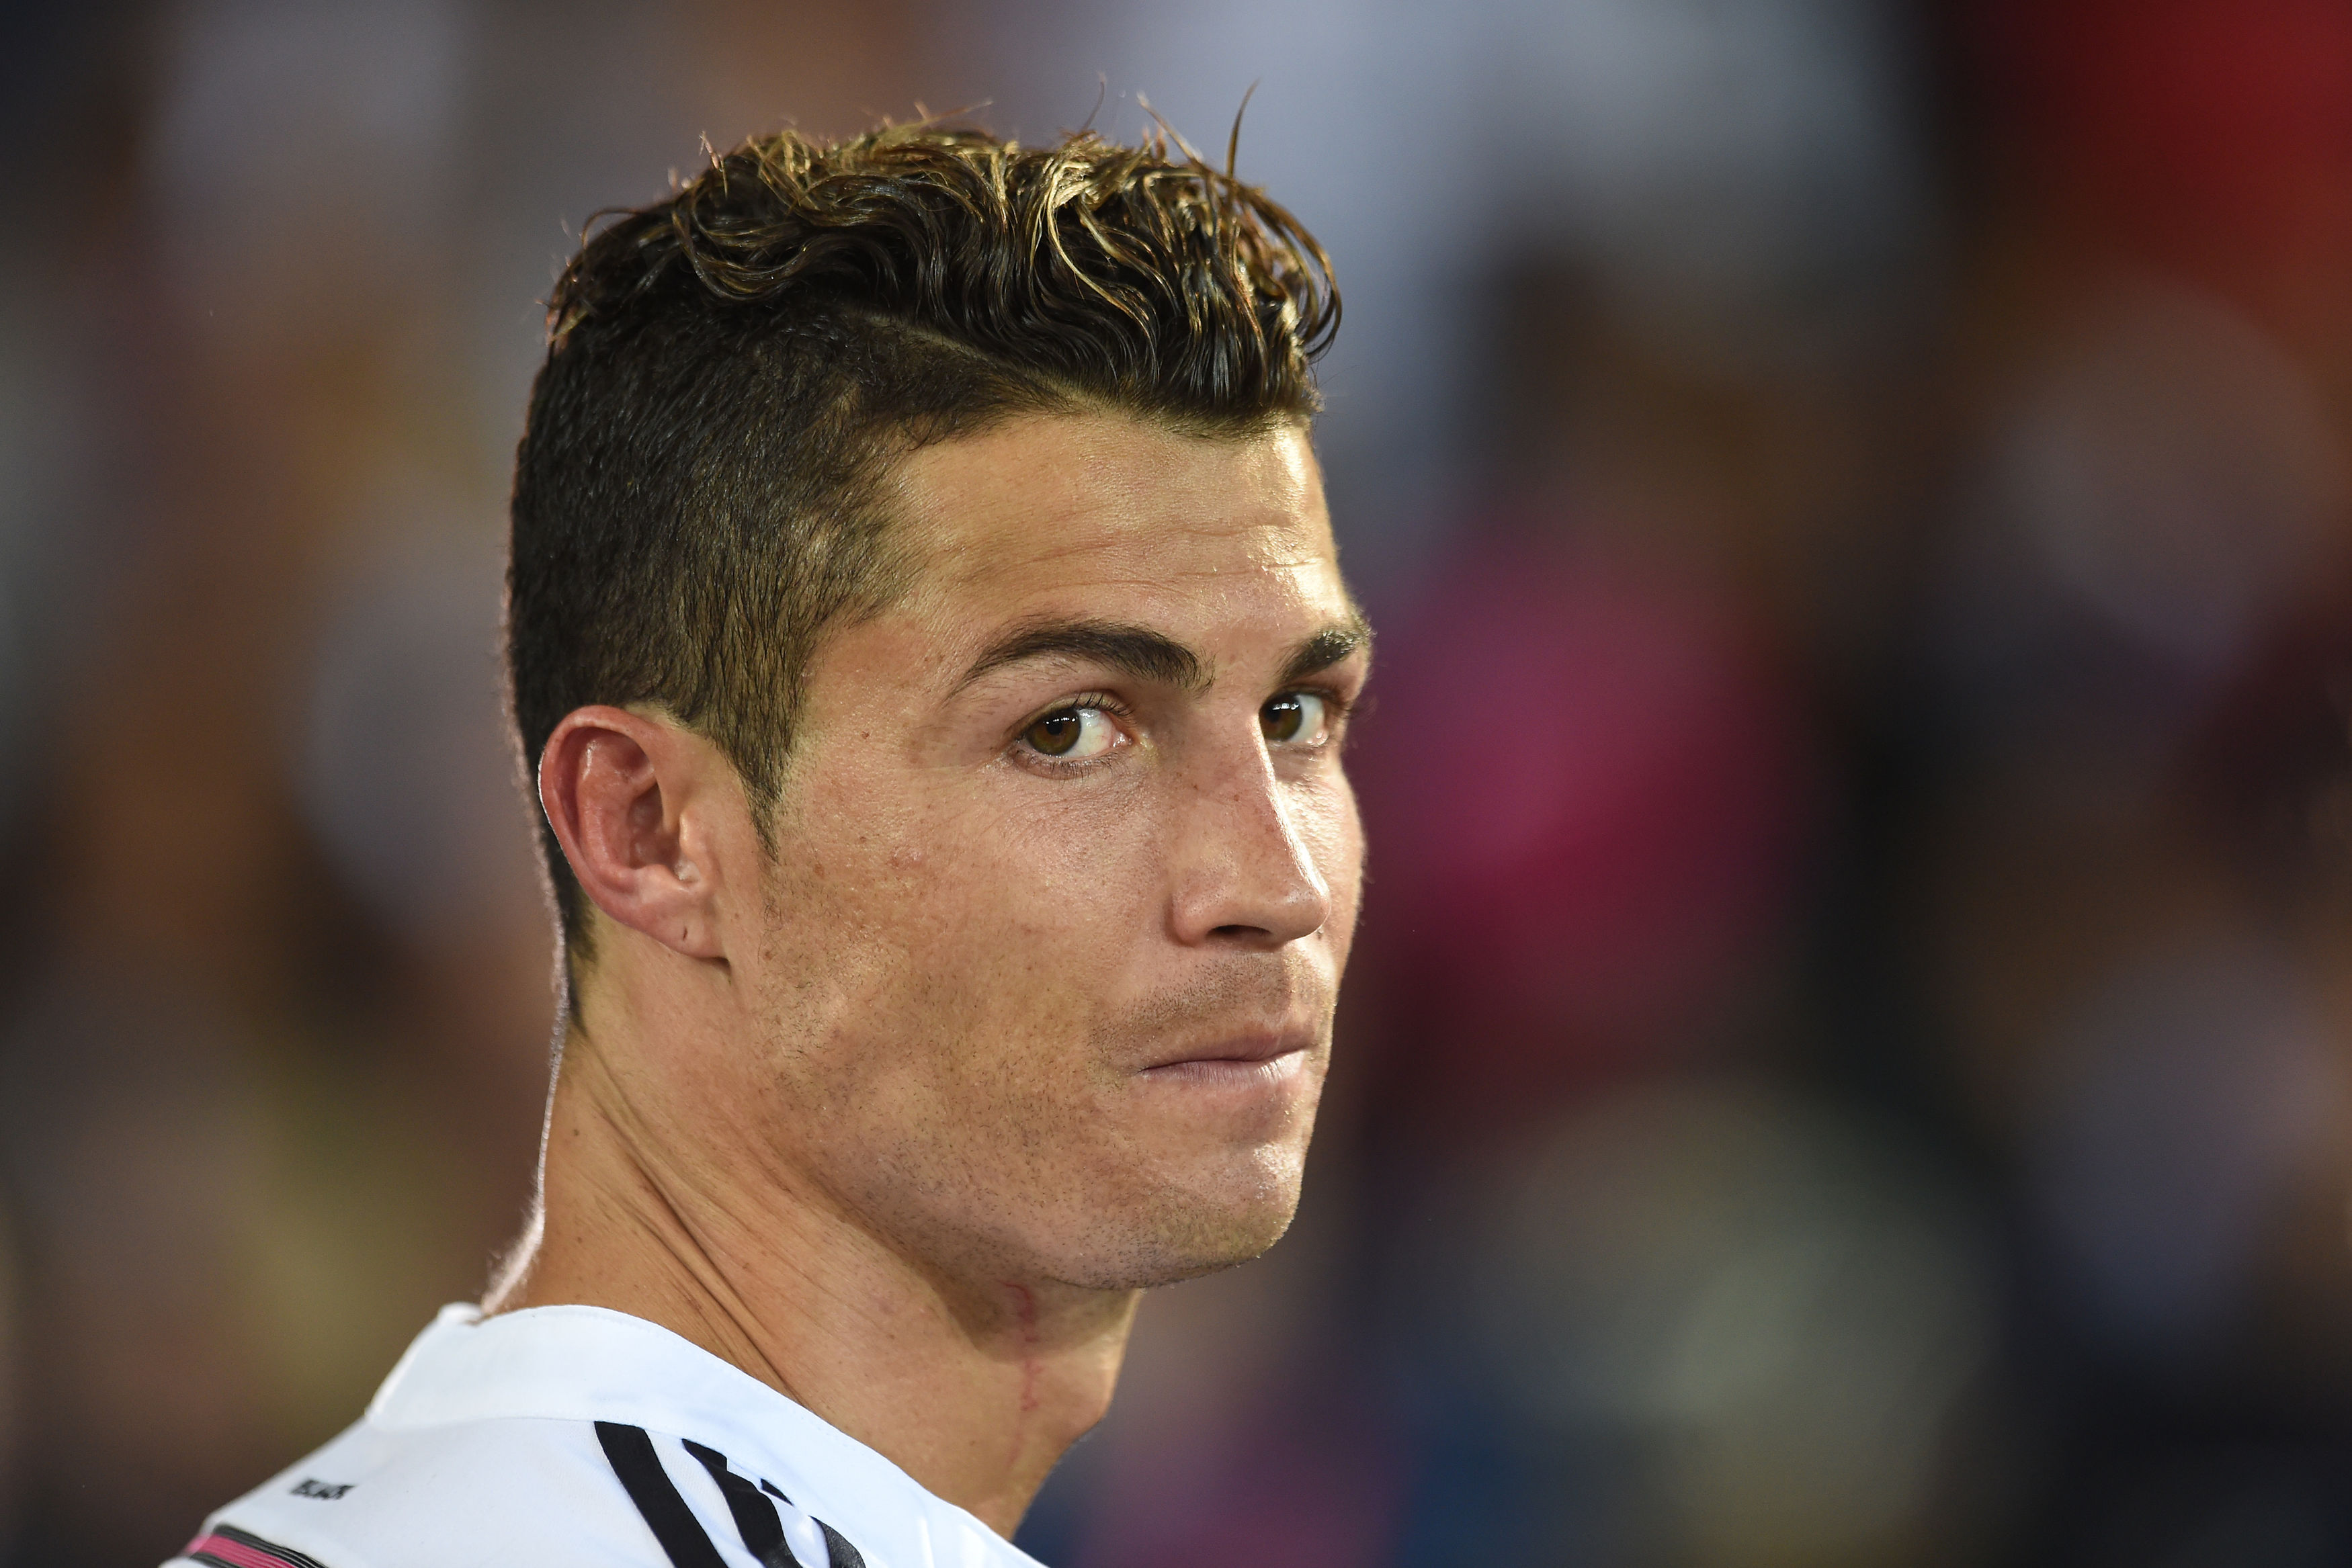 Cristiano Ronaldo will stay at Real Madrid, claims Mourinho